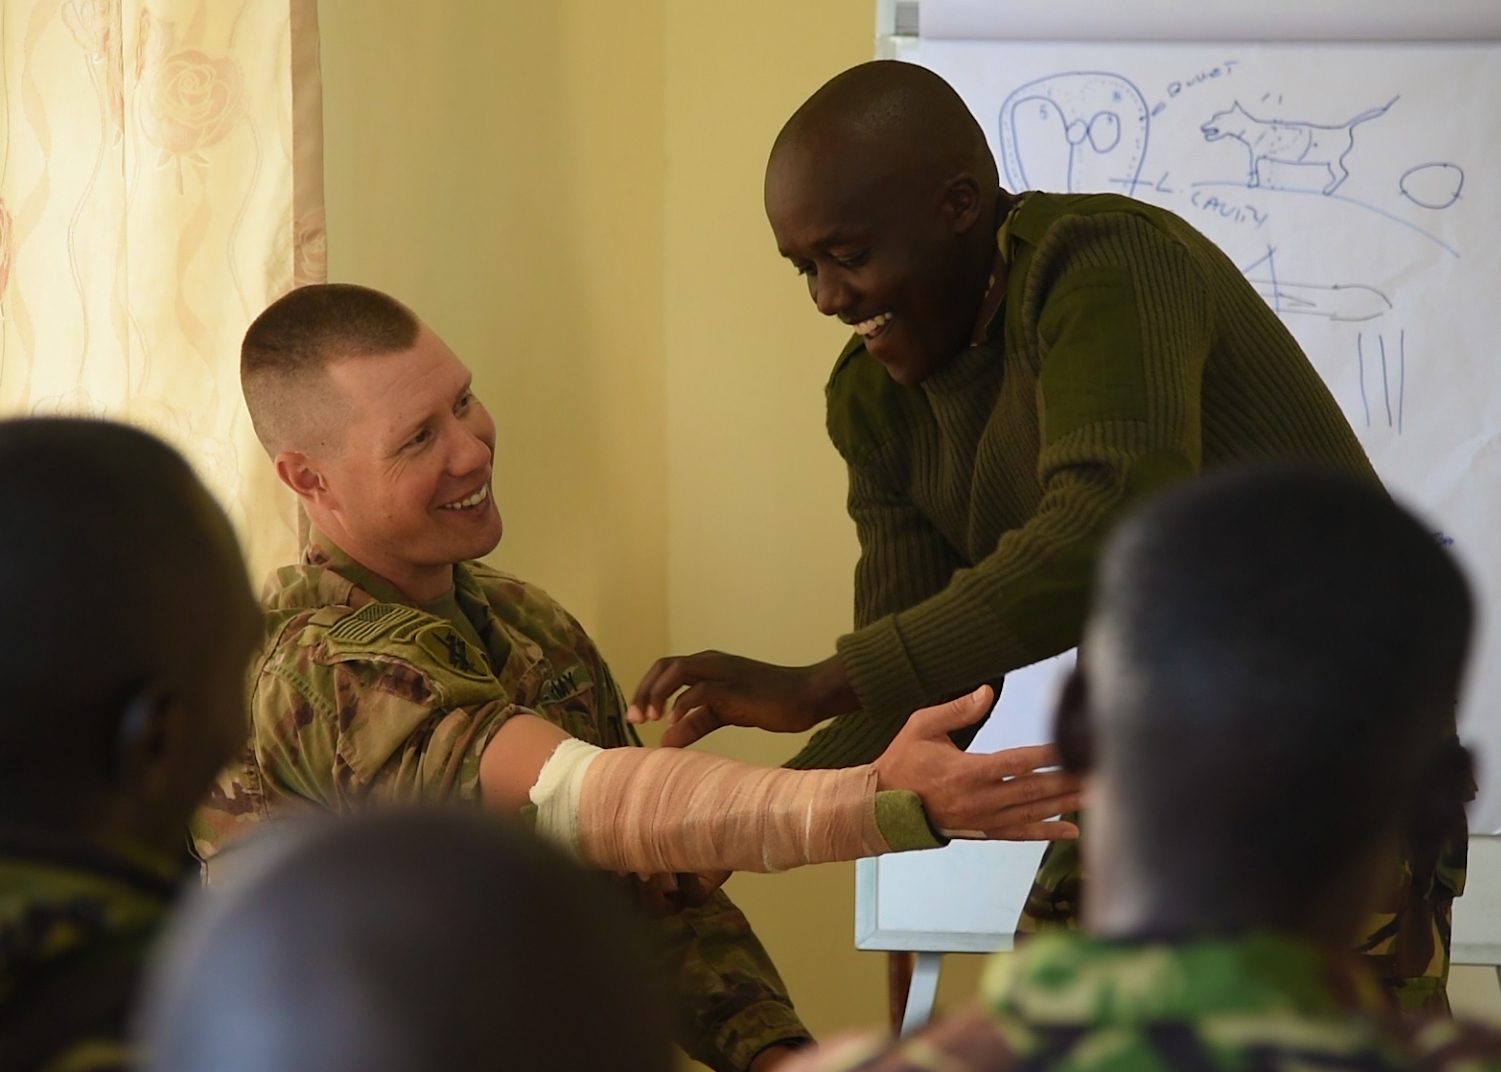 U.S. Army Capt. James McKasson, a veterinarian from the 403rd Civil Affairs Battalion's Functional Specialty Team assigned to Combined Joint Task Force-Horn of Africa, participates in a demonstration of splinting procedures with a member of the Kenya Defence Force's 1st Canine Regiment in Nairobi, Kenya, Nov. 23, 2018. Tactical Combat Casualty Care was a primary focus in the recent exchange between U.S. and Kenyan veterinarians and military working dog handlers. (U.S. Air Force photo by Senior Airman Kirsten Brandes)